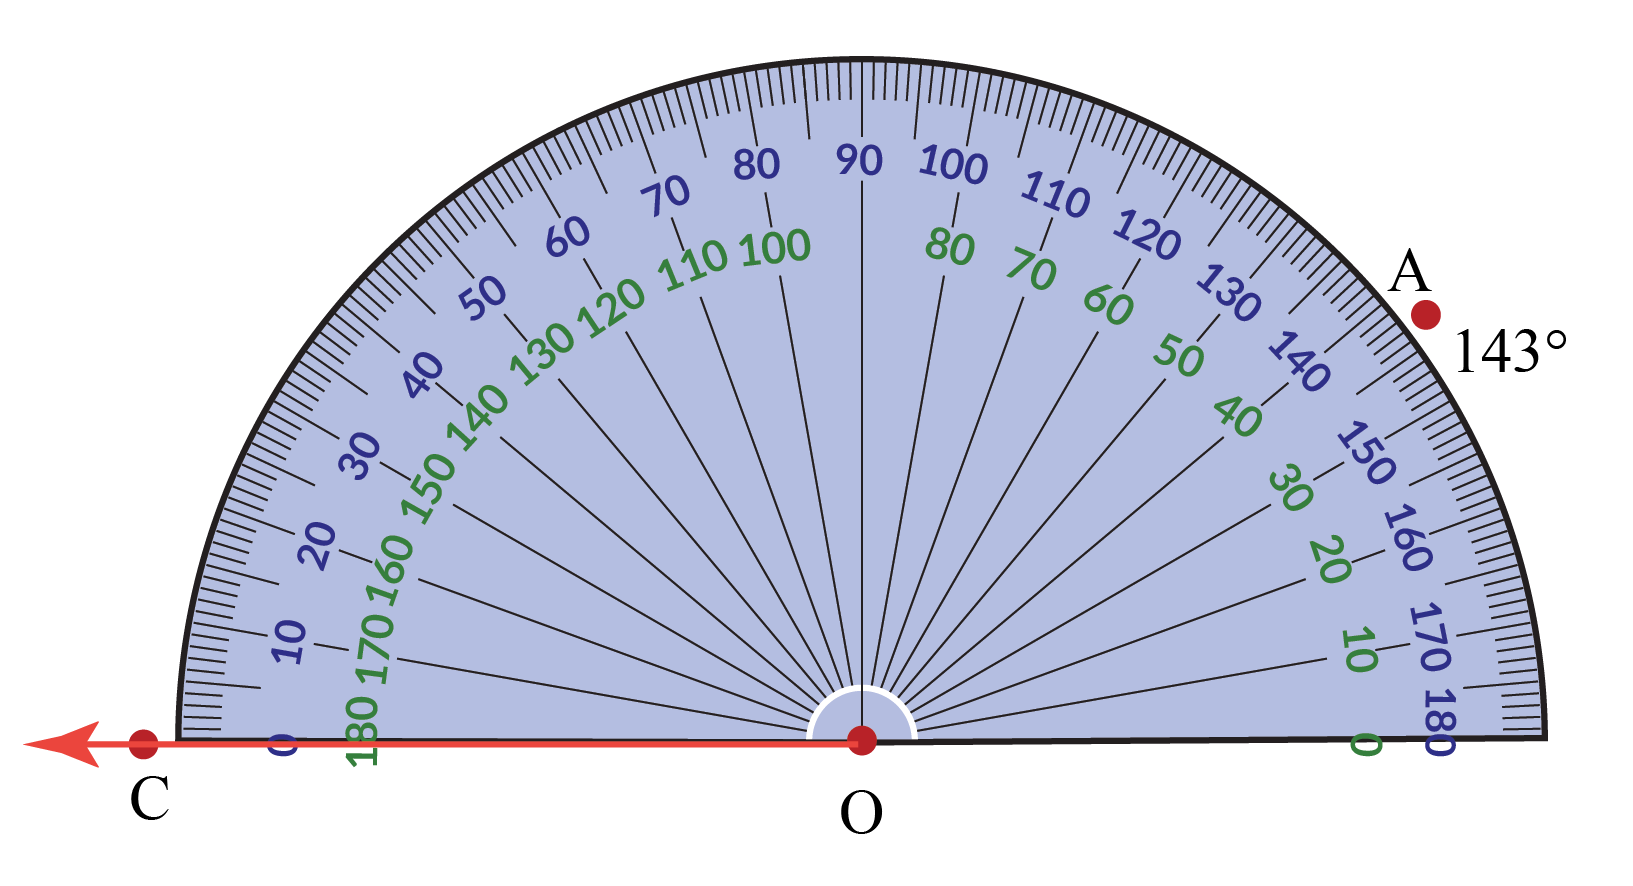 Measure the angle from the 0 degree mark on the bottom-left.